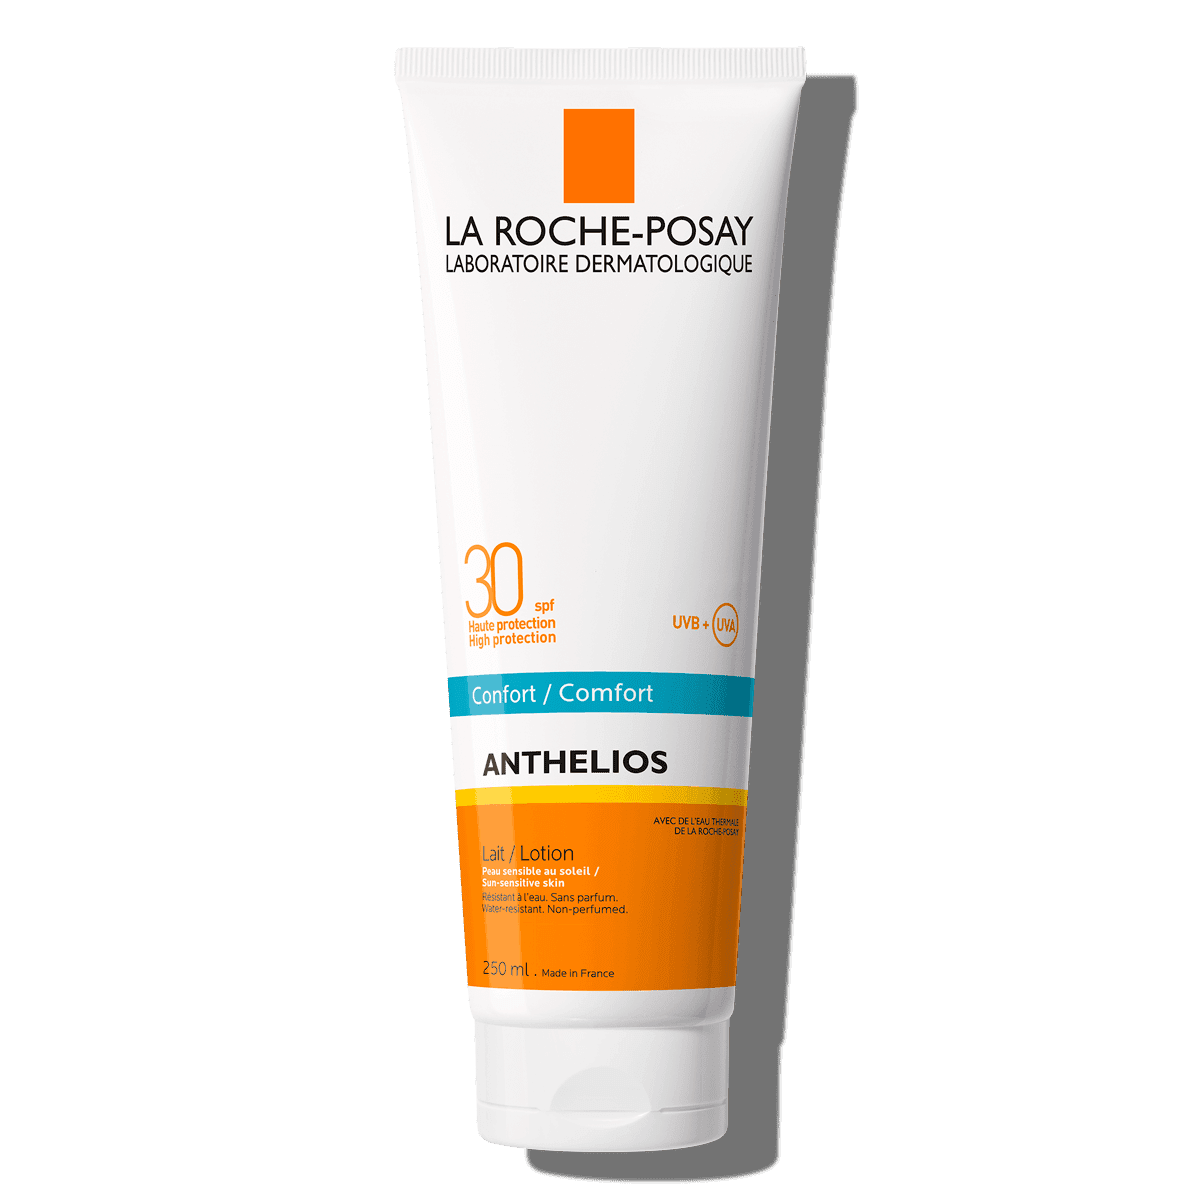 La Roche Posay ProductPage Sun Anthelios Smooth Lotion Spf30 250ml 333